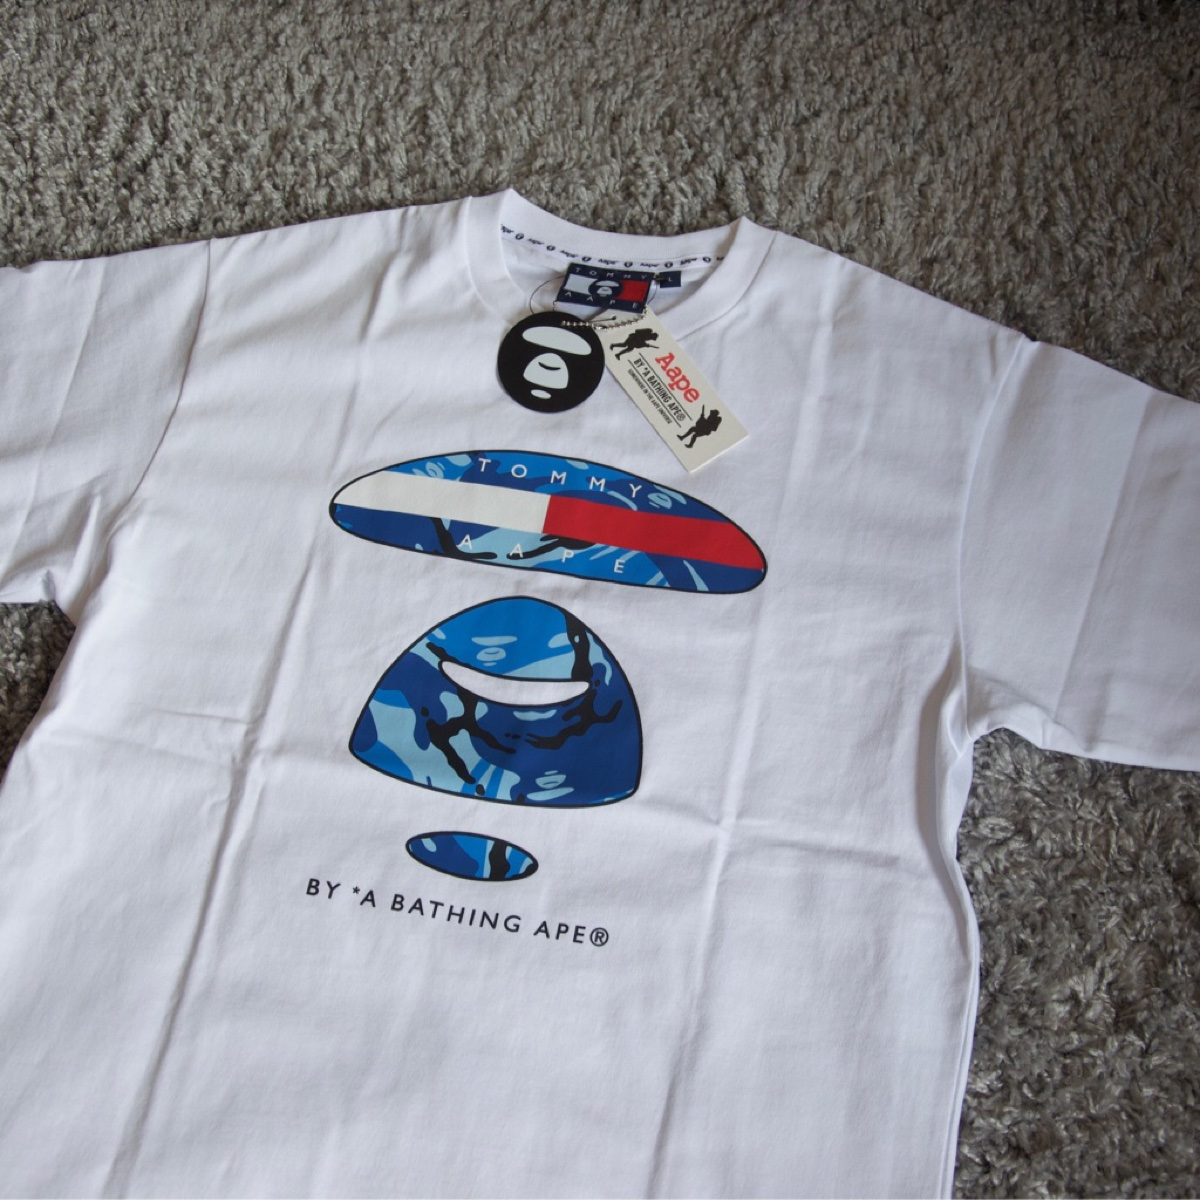 Tommy x Aape T-shirt